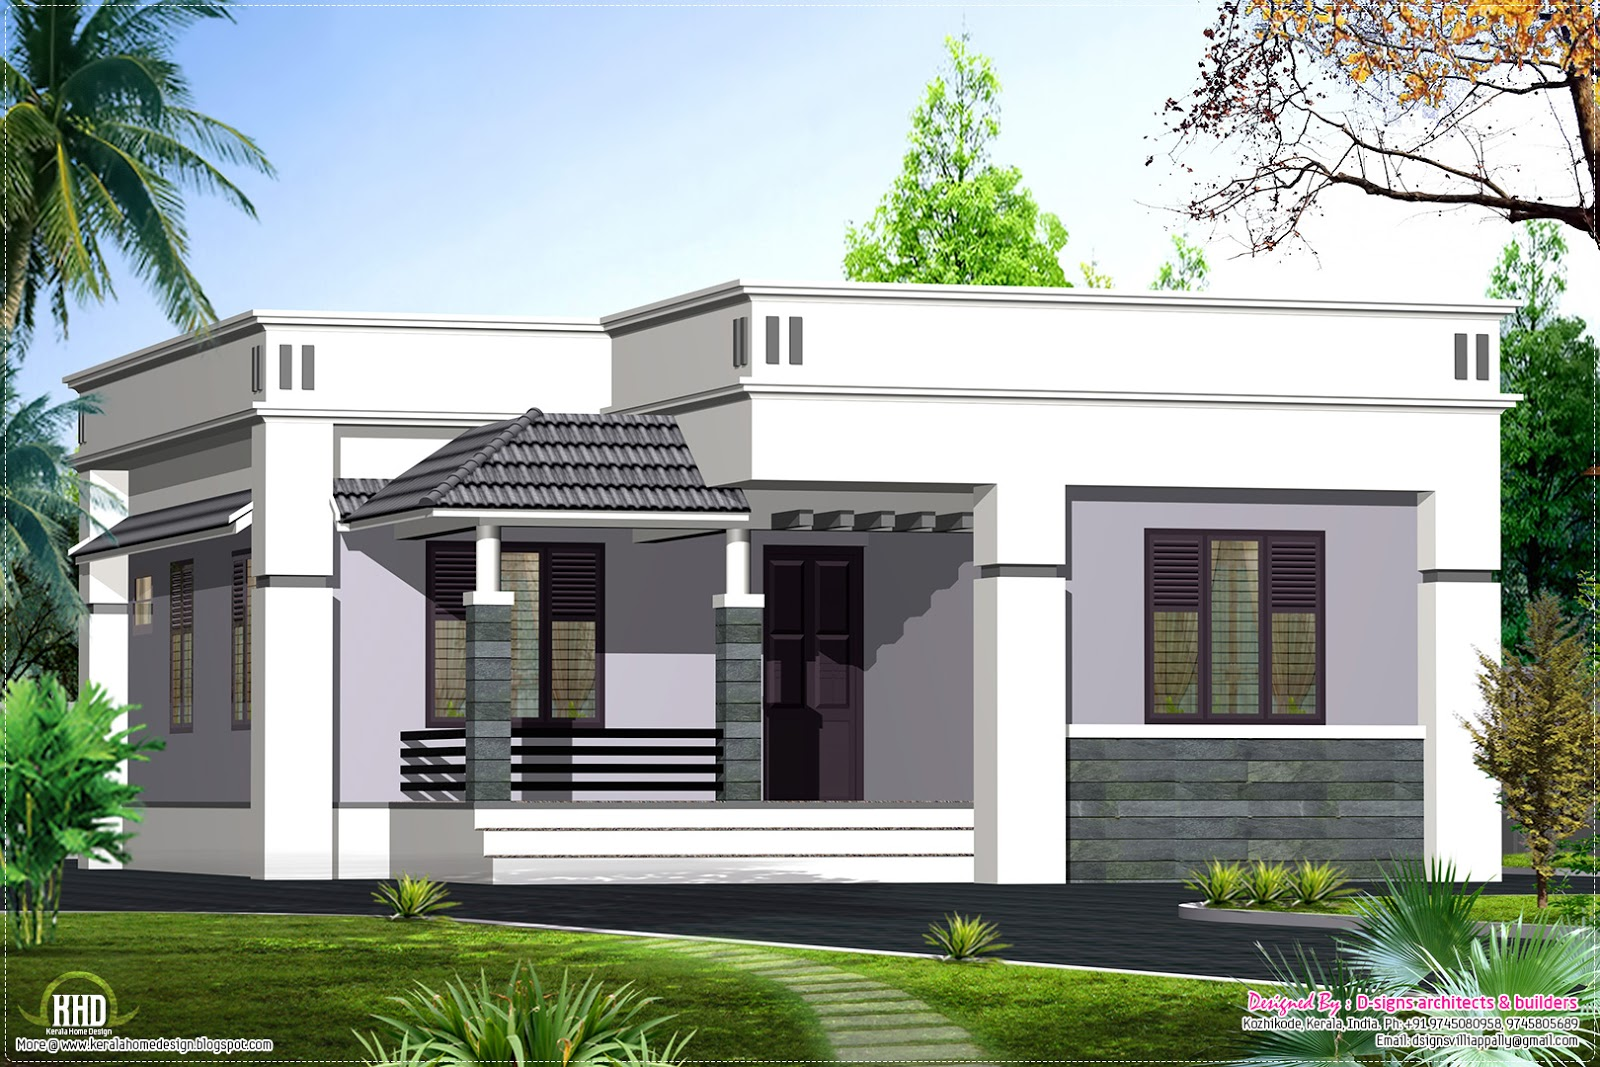 One floor house design 1100 home kerala plans for 2 bedroom house designs in india